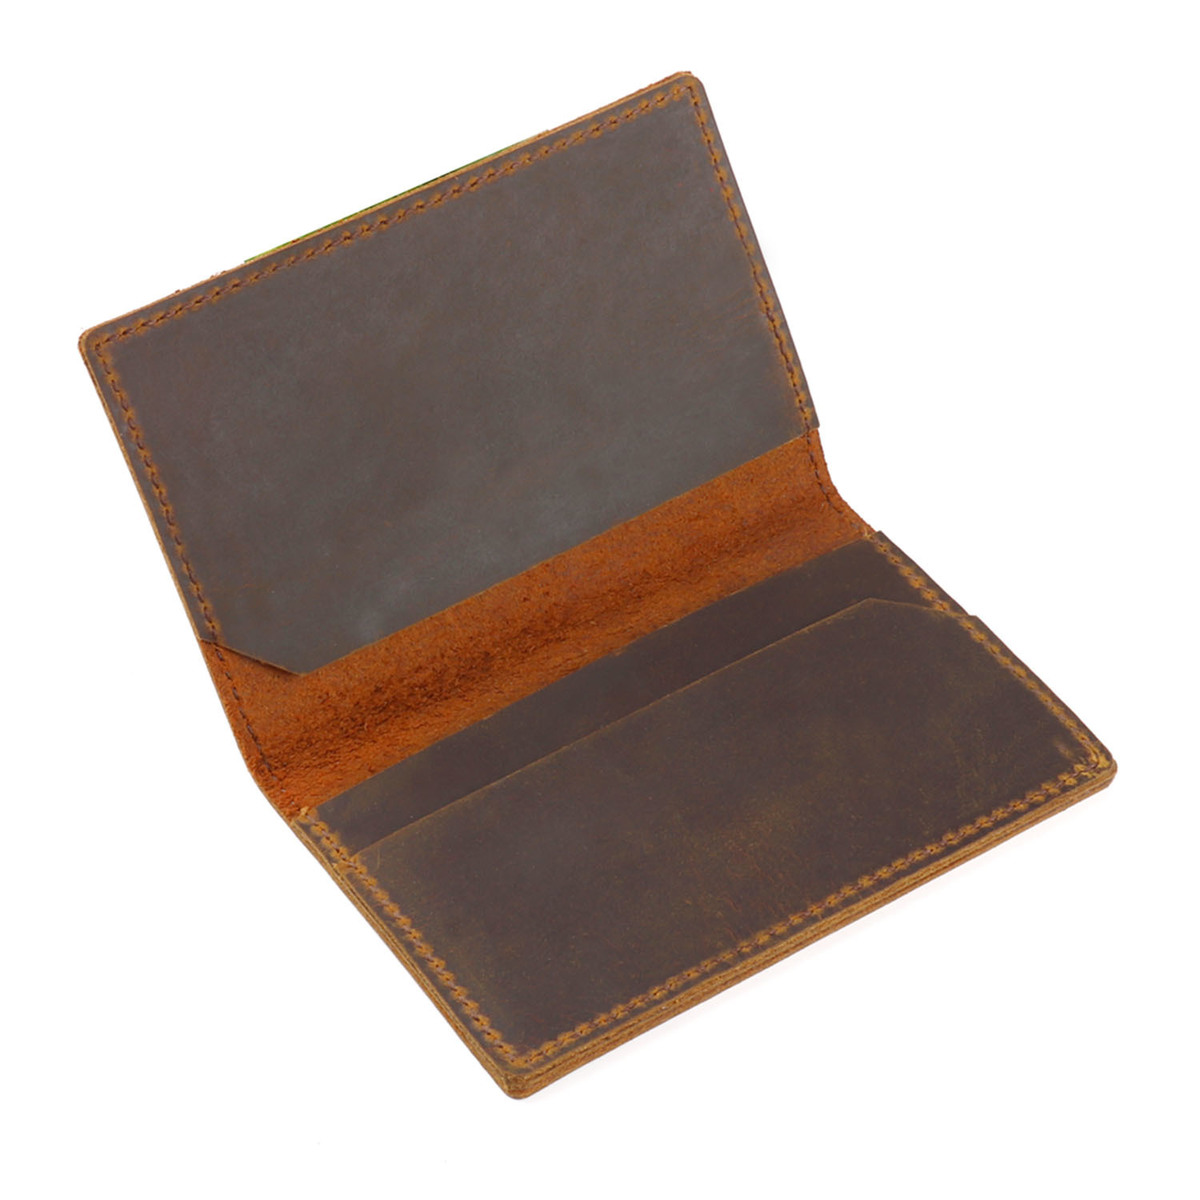 Leather 40 Card Commercial Name ID Credit Card Book Case Holder Organizer KK